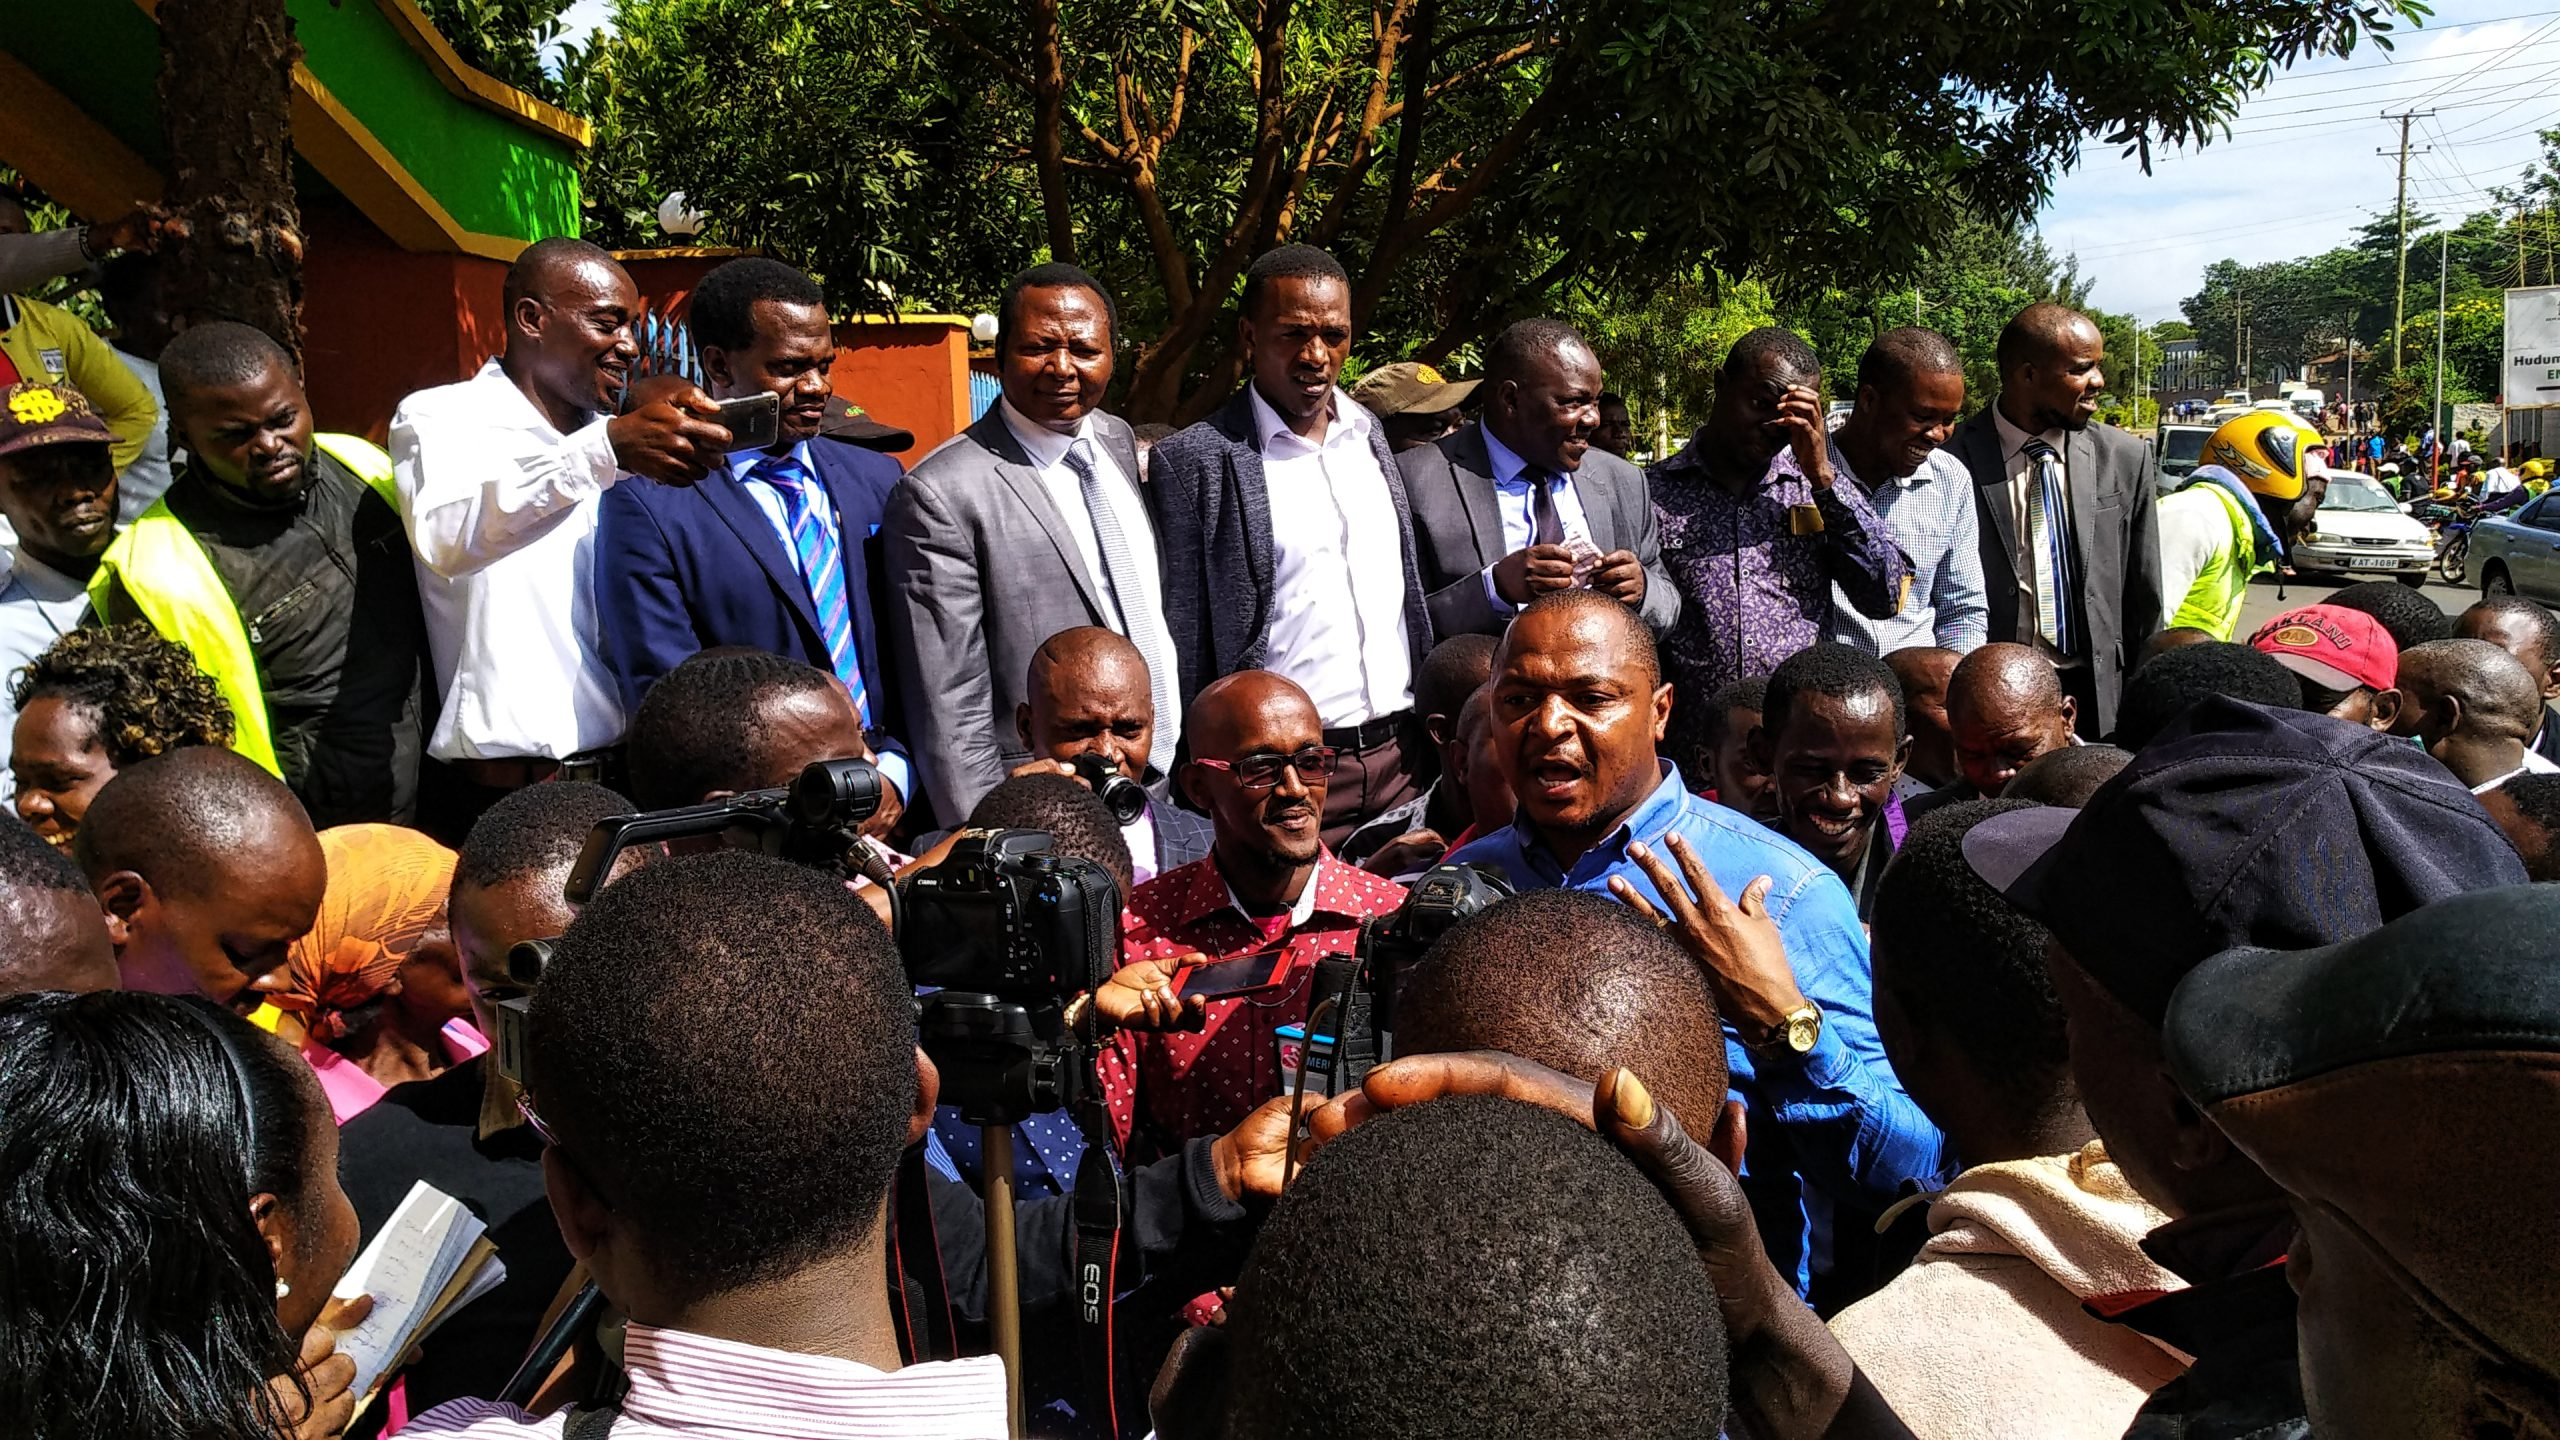 /Speaker-Josiah-Thiriku-addressing-demonstrators-who-were-protesting-his-harassment-by-the-Courts-outside-Governor-Martin-Wamboras-Office.